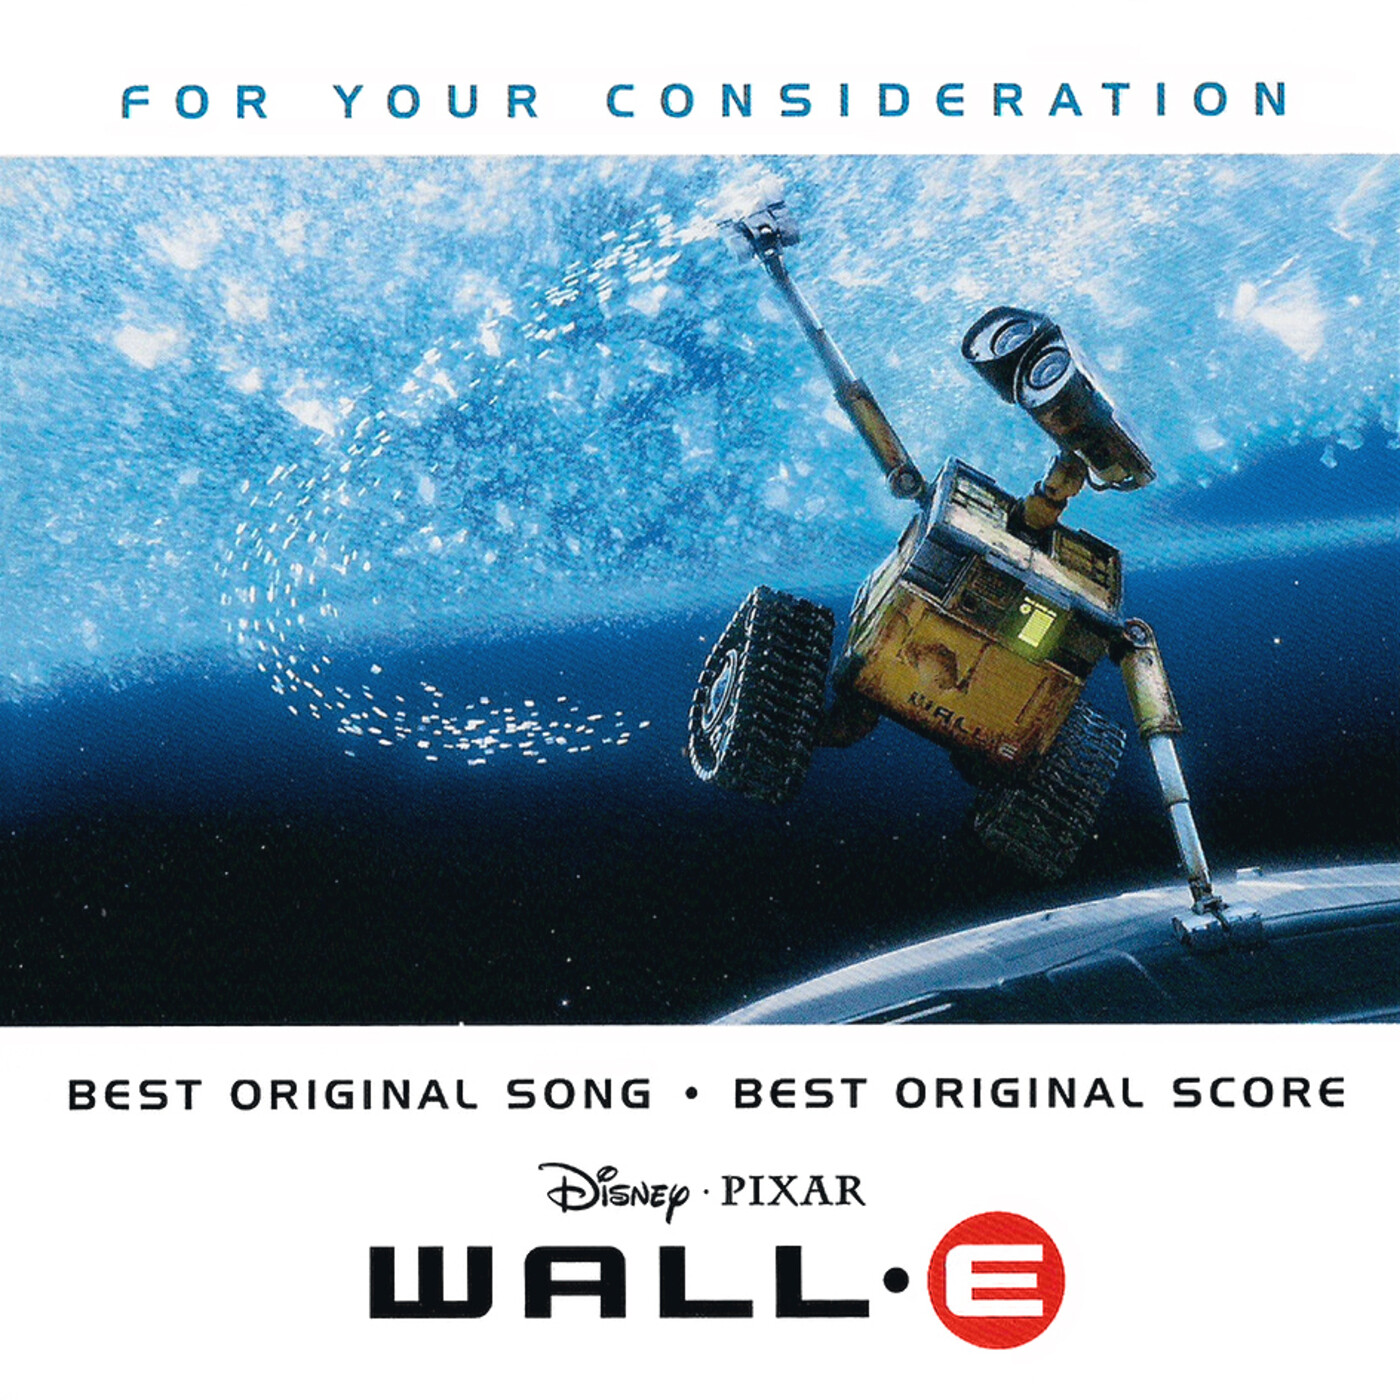 WALL-E (For Your Consideration Promo)